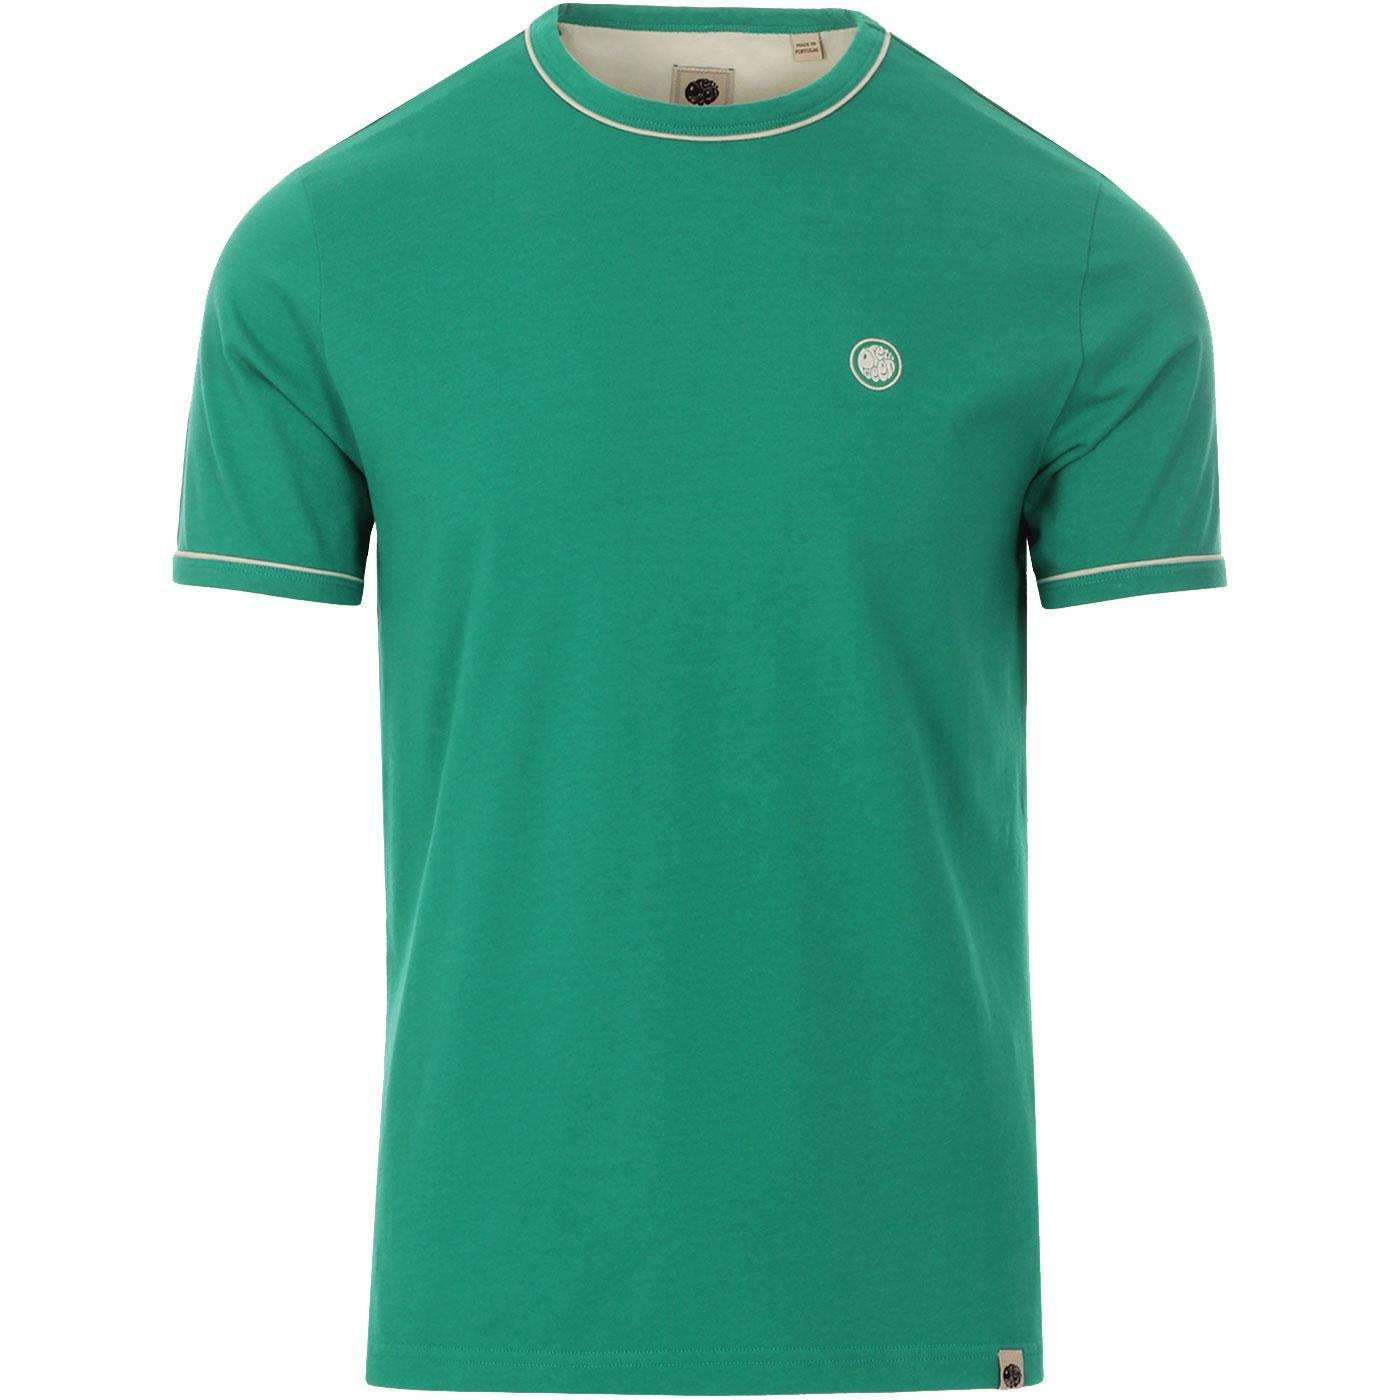 PRETTY GREEN Mens Retro Contrast Piping Ringer Tee